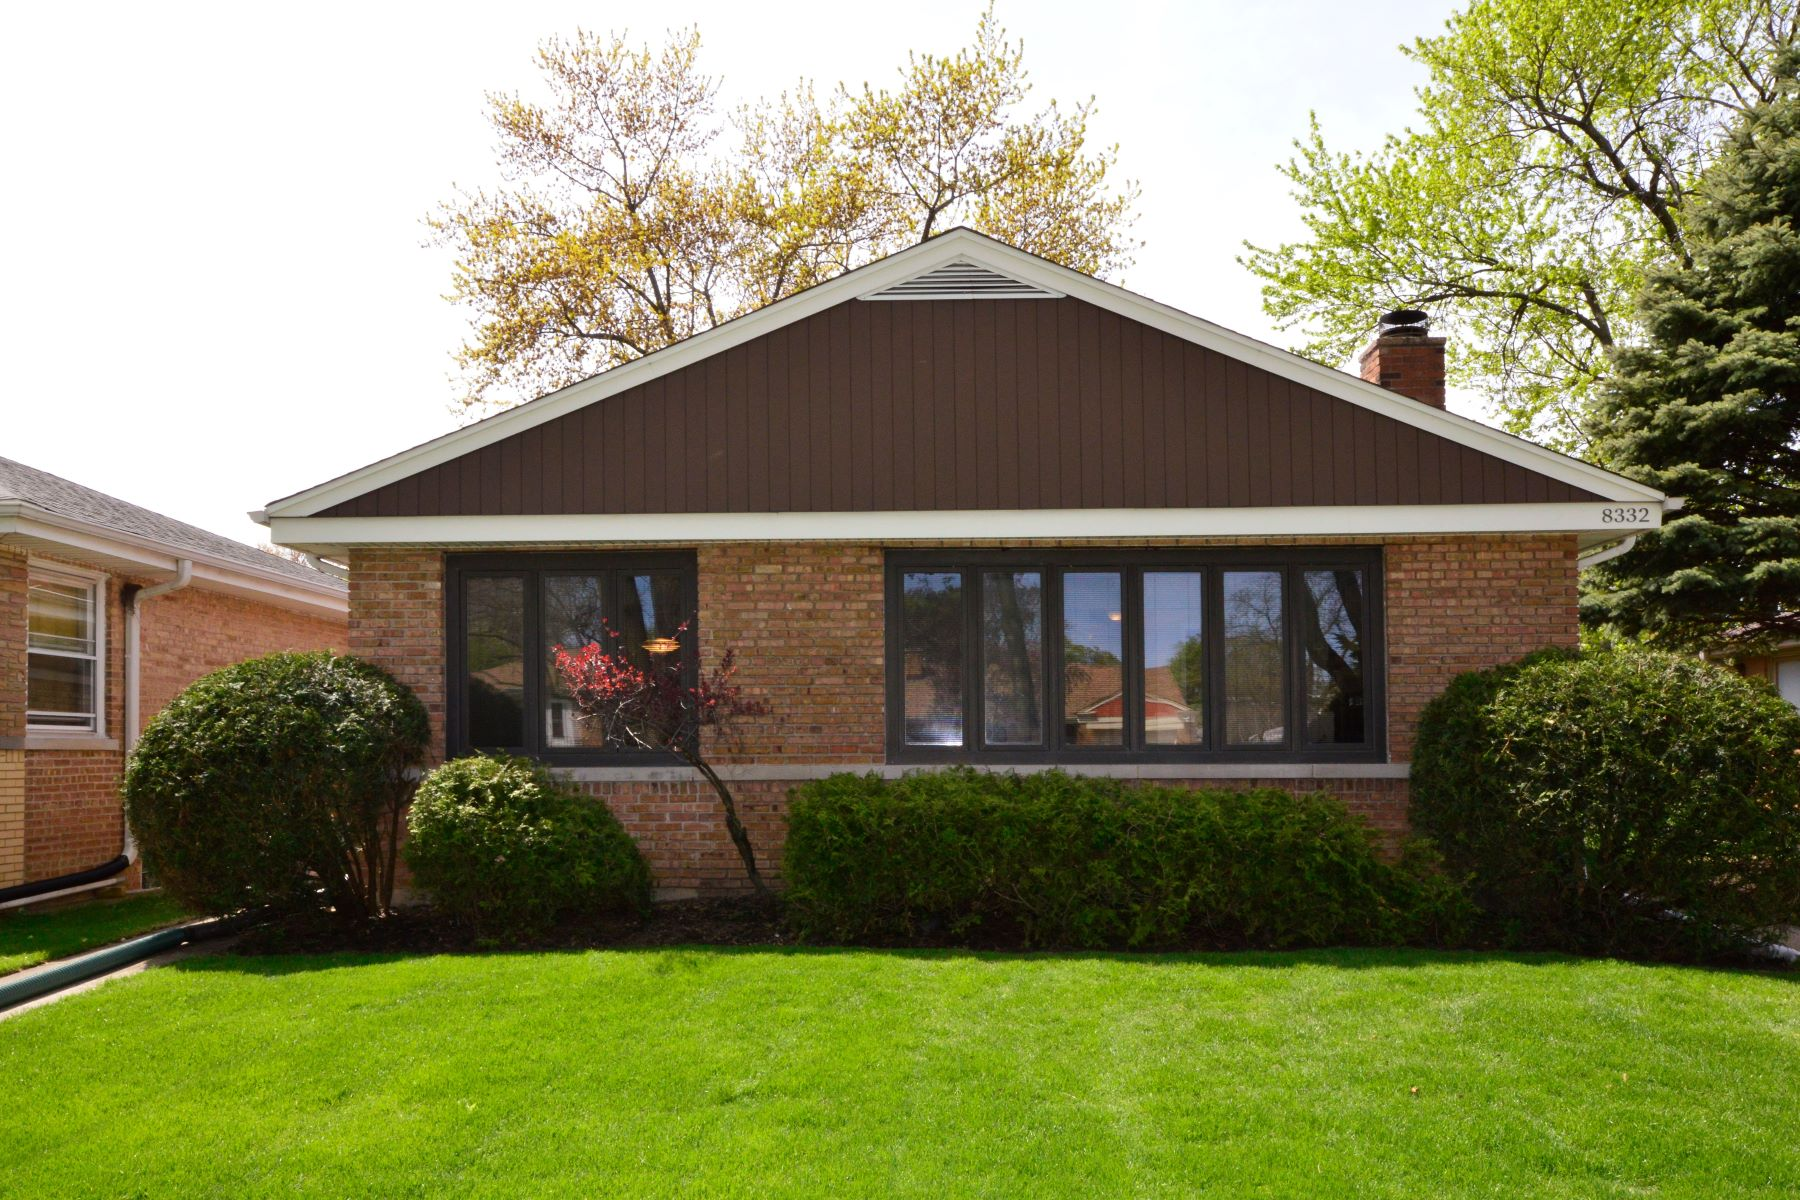 Single Family Homes for Active at This One Checks All The Boxes! 8332 Tripp Avenue Skokie, Illinois 60076 United States